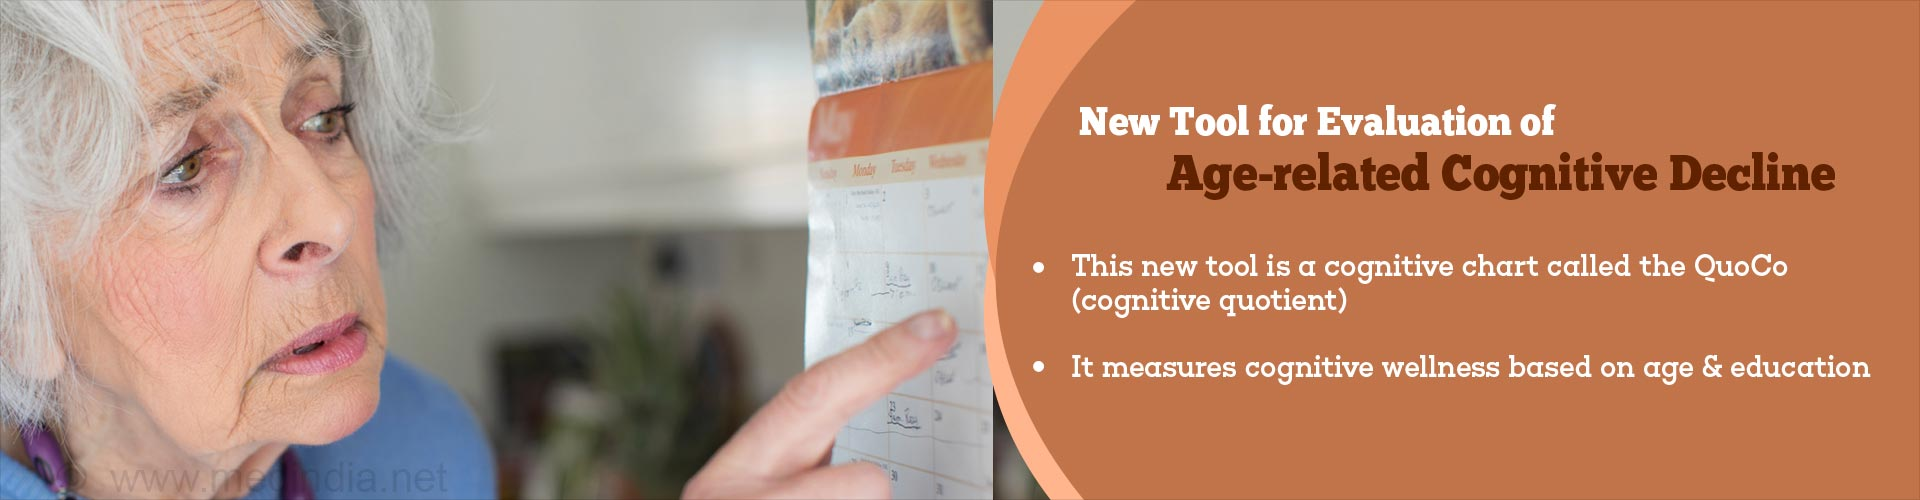 New tool for evaluation of age-related cognitive decline - this new tool is a cognitive chart called the QuoCo (cognitive quotient) - it measures cognitive wellness based on age & education